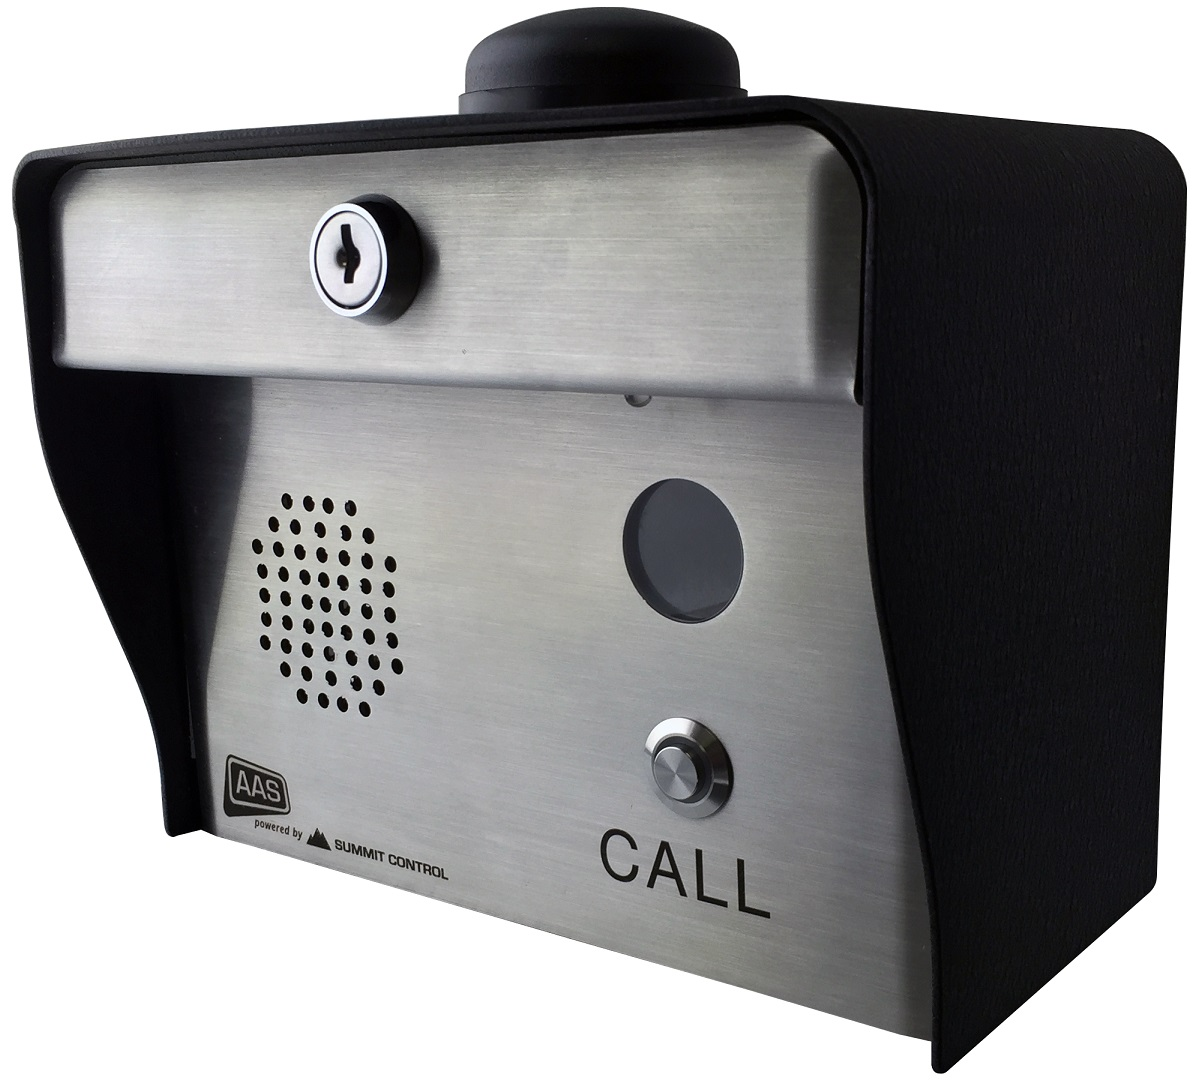 Ascent T1 – Cellular Telephone Entry System